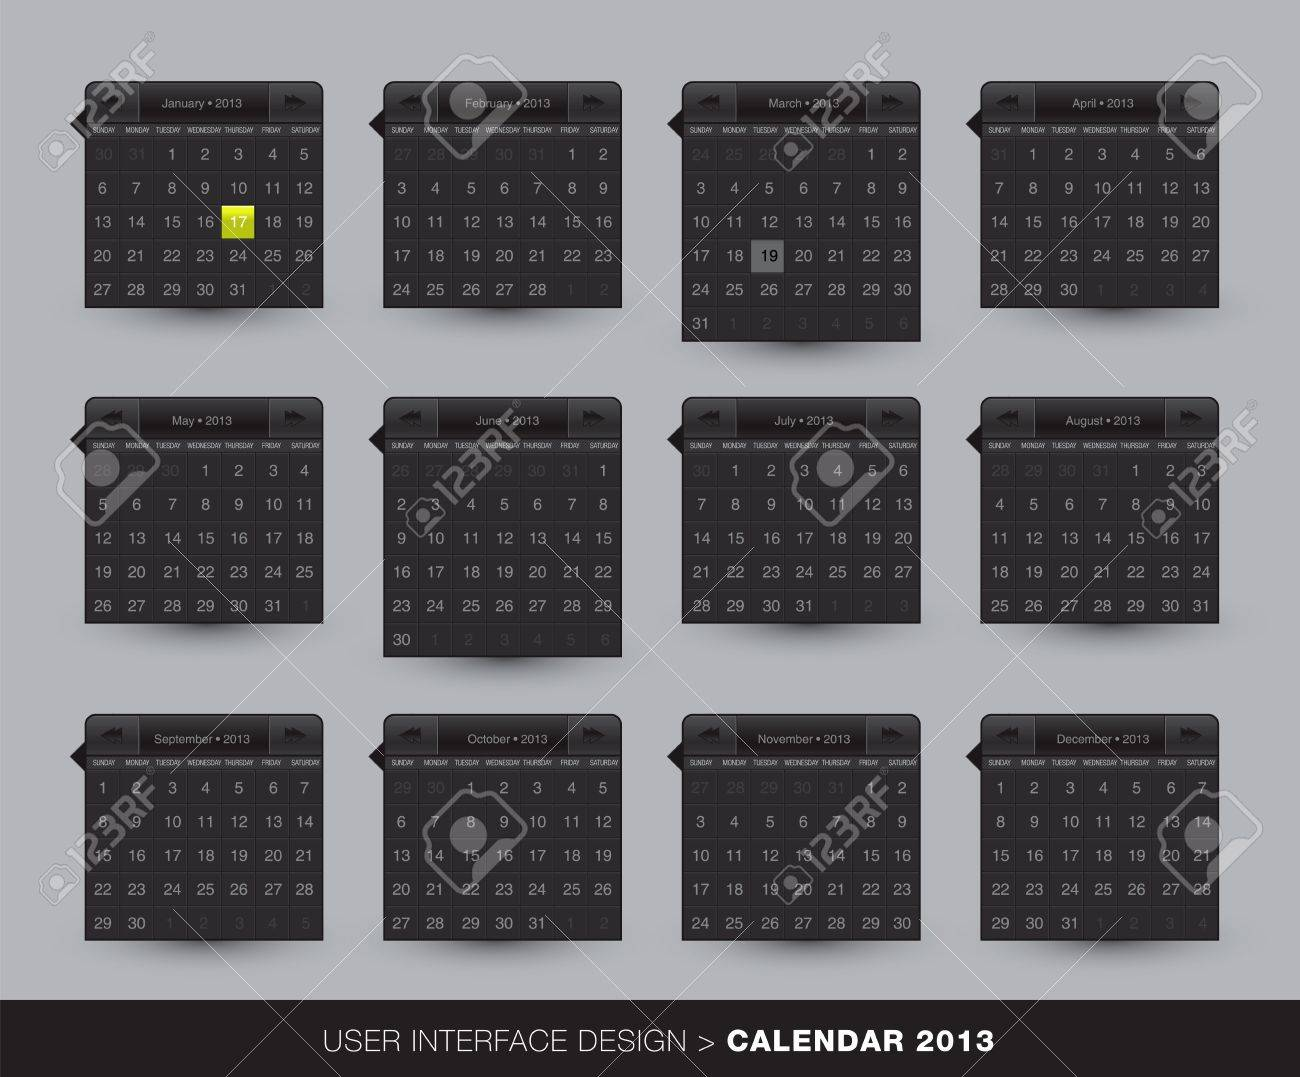 2013 monthly Calendar design for mobile phone in editable vector format Stock Vector - 16643304